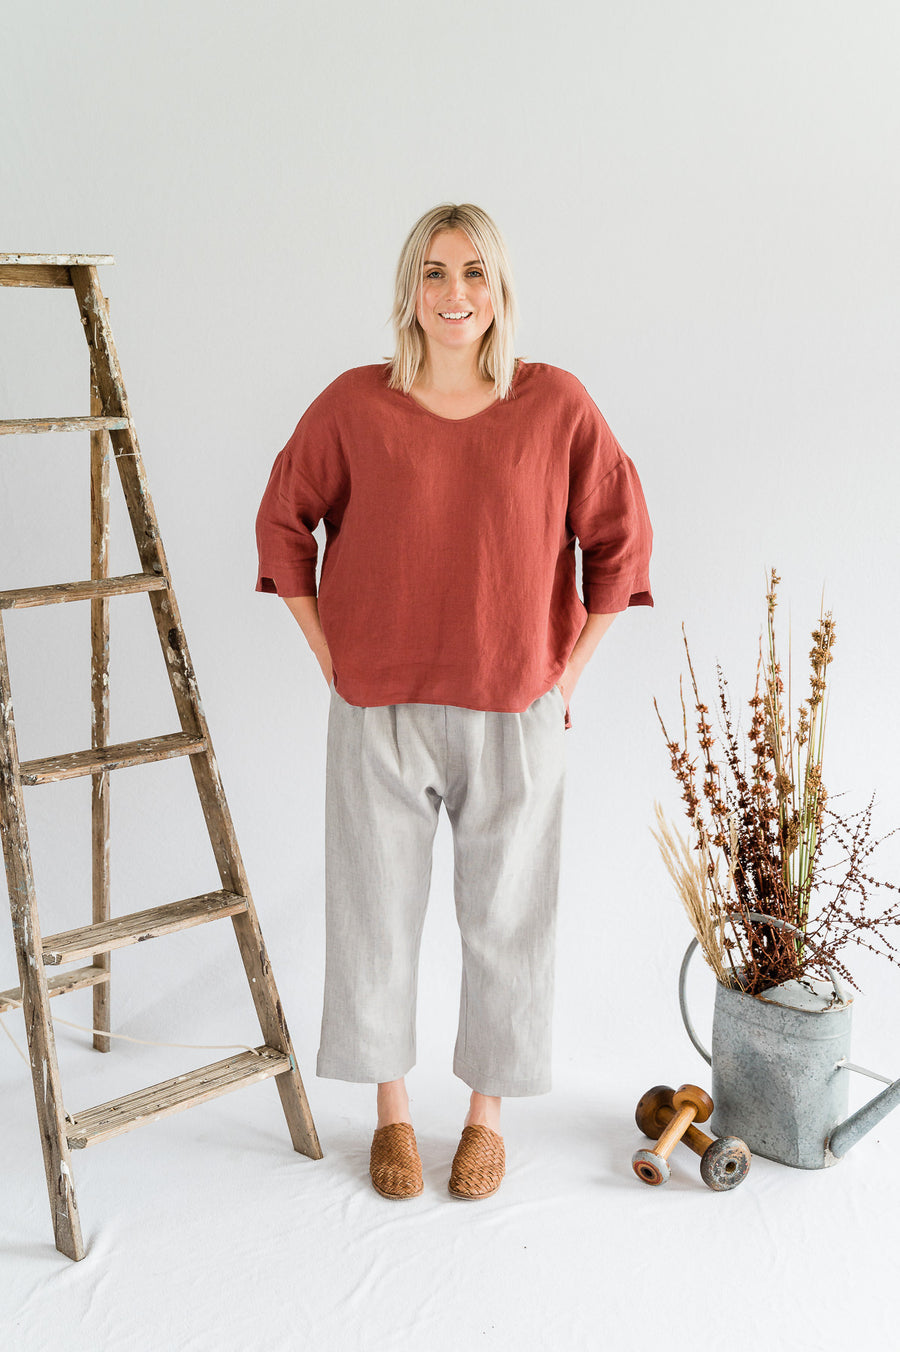 Field Top - Merlot - Shop Online At Mookah - mookah.com.au